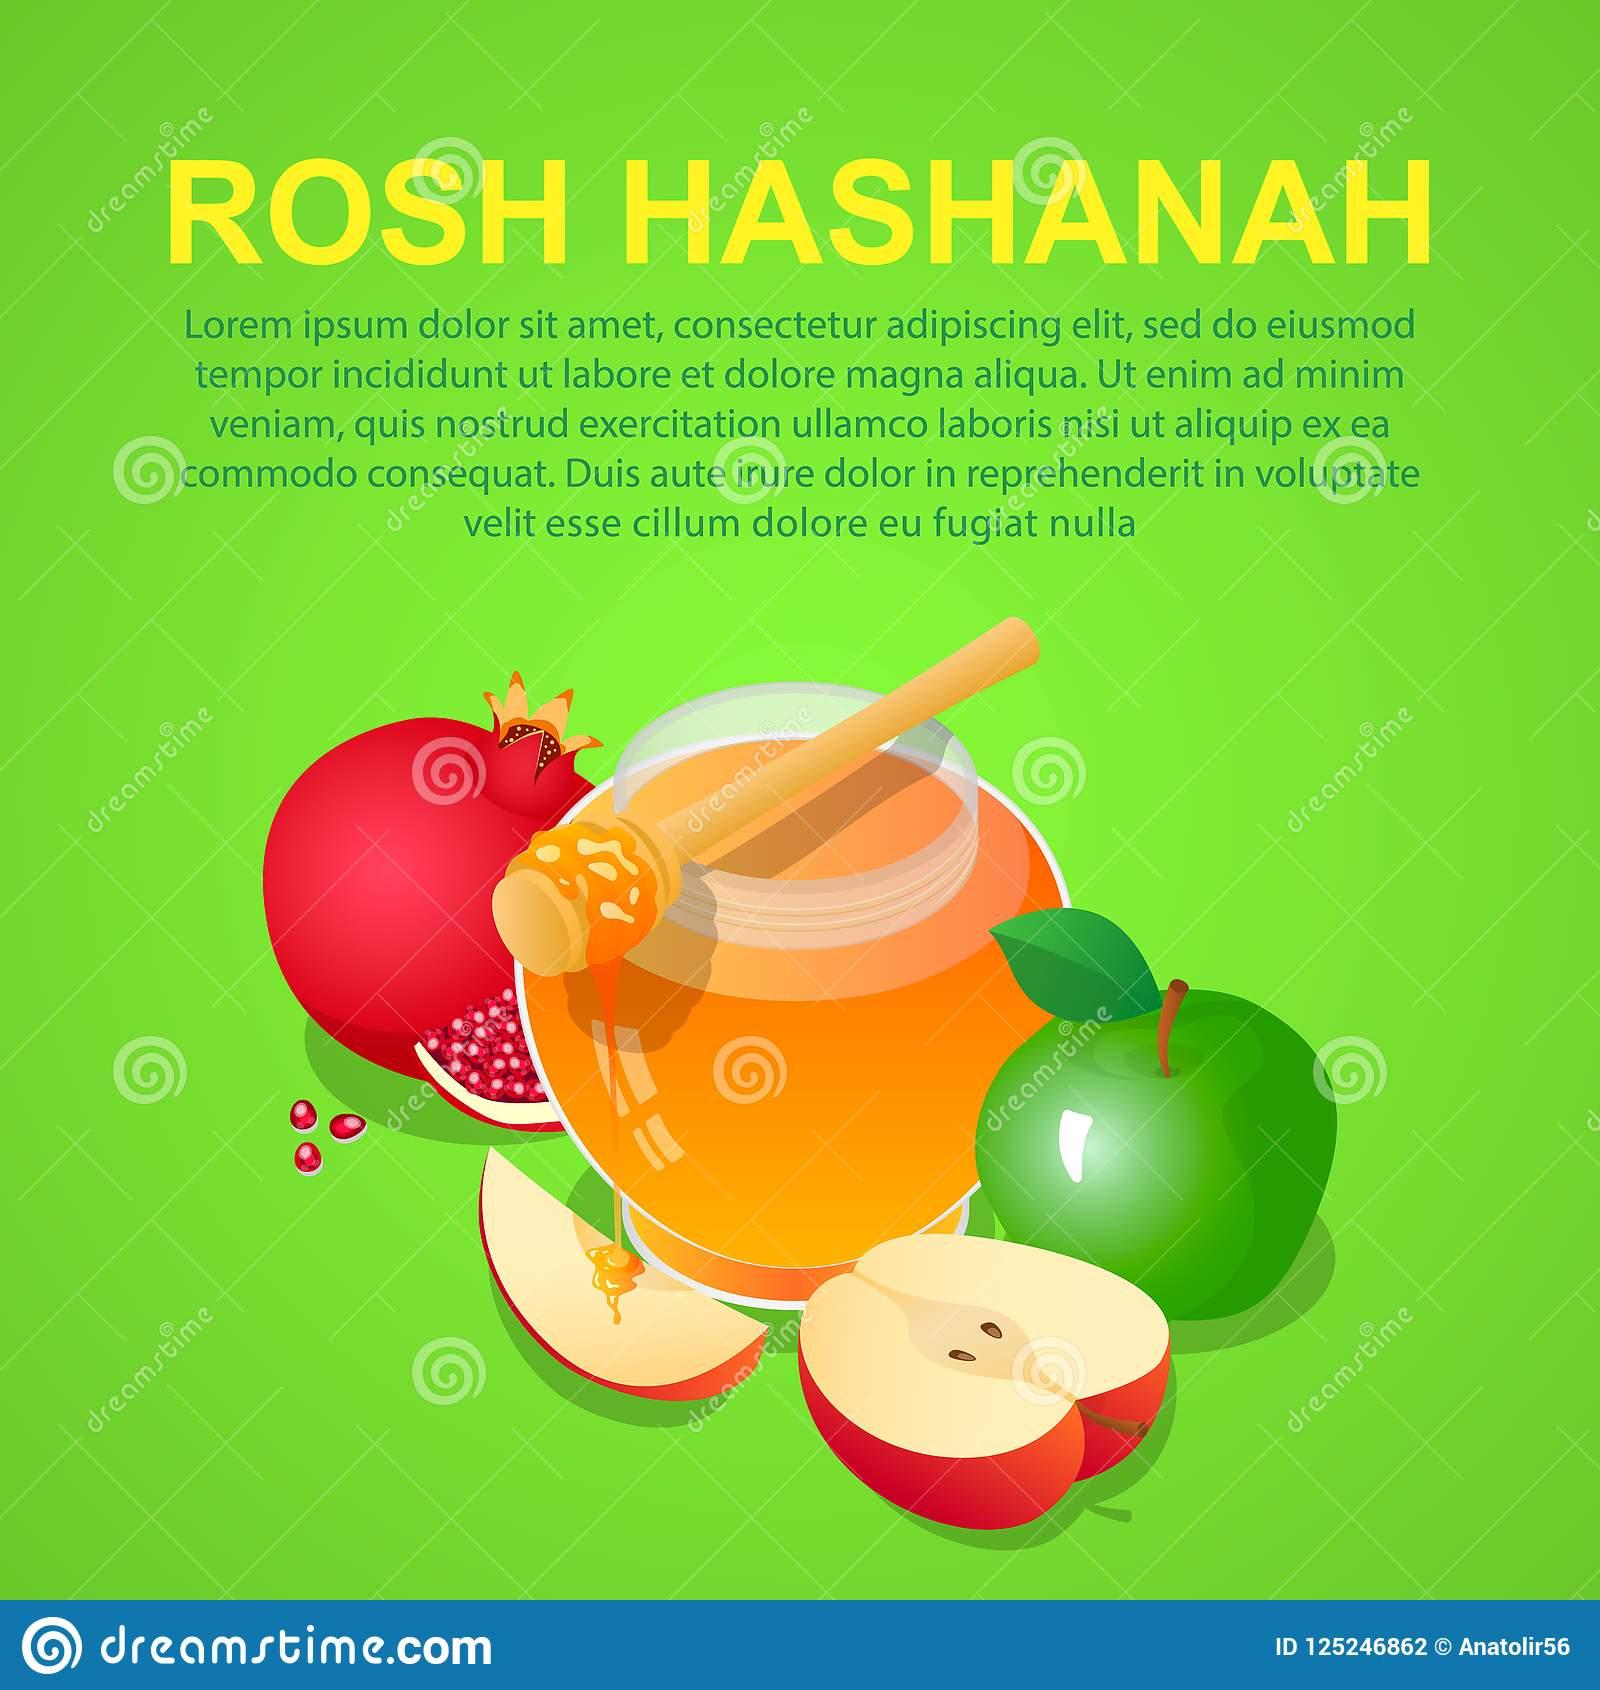 Rosh hashanah concept background isometric of rosh hashanah vector concept background for web design